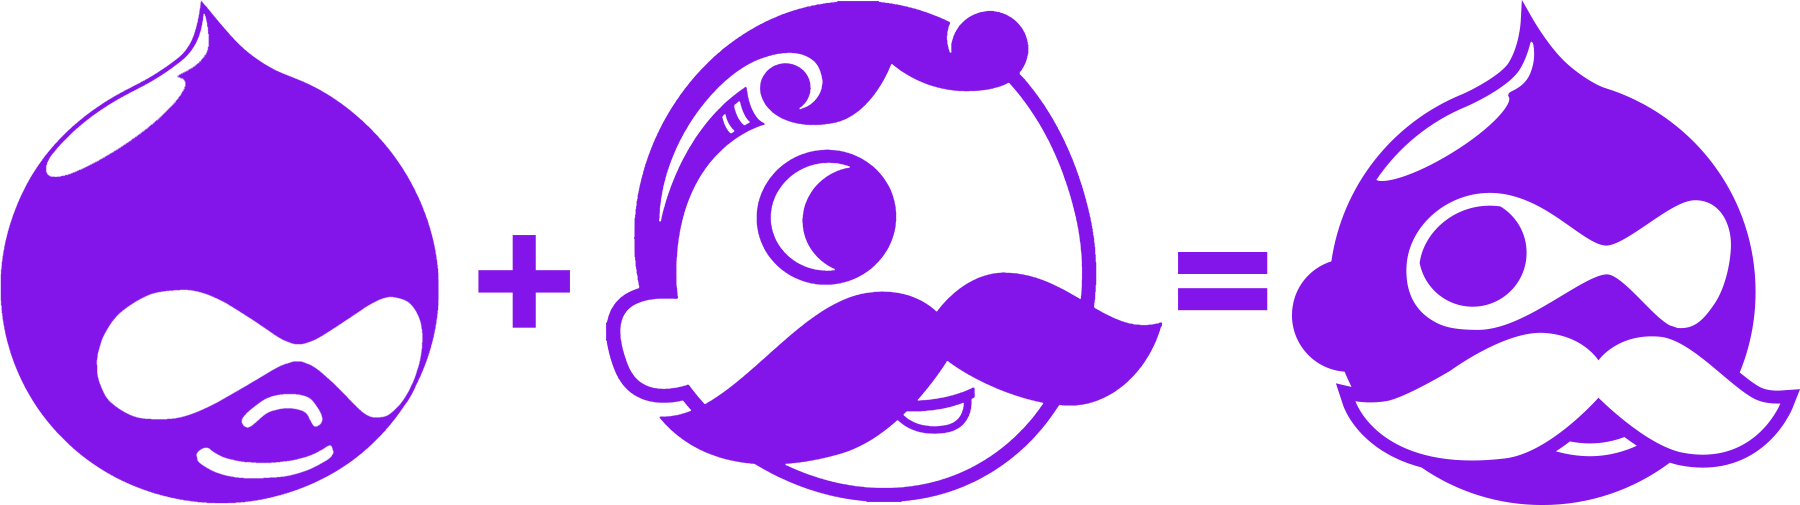 The Drupal and National Bohemian logos combining into the Drupal Boh logo